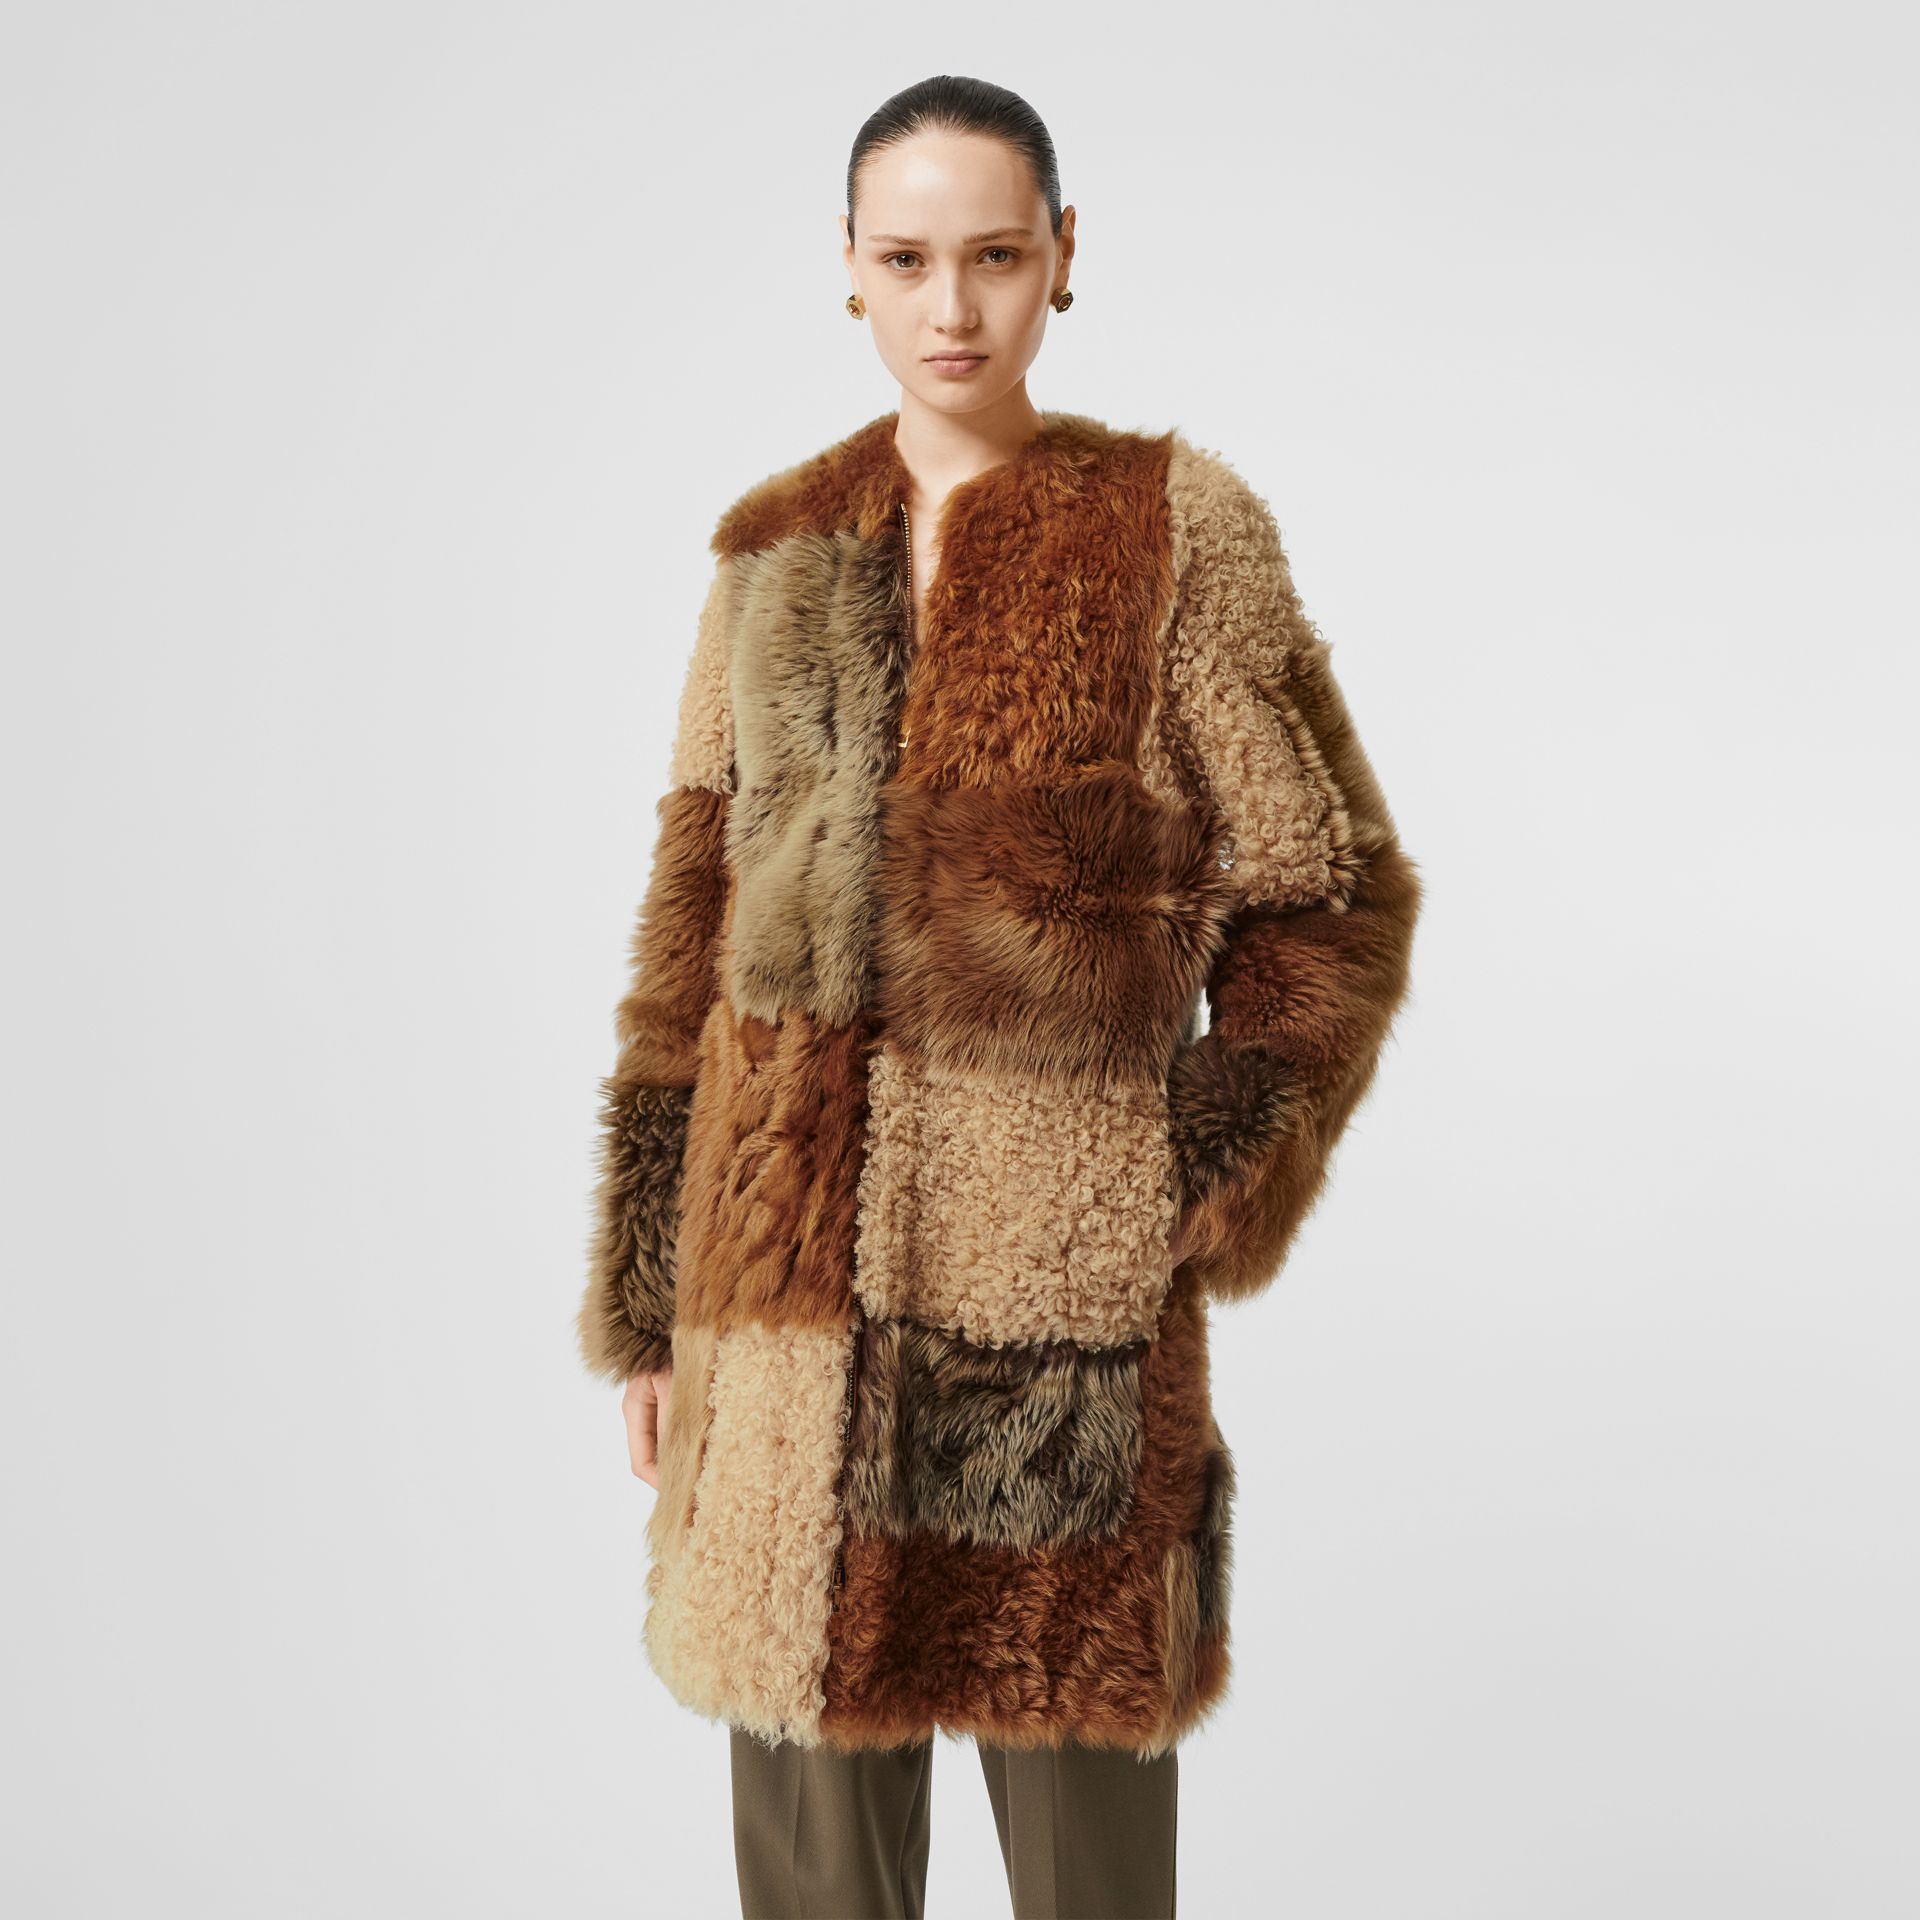 Patchwork Shearling Coat in Toffee - Women | Burberry United Kingdom - gallery image 6